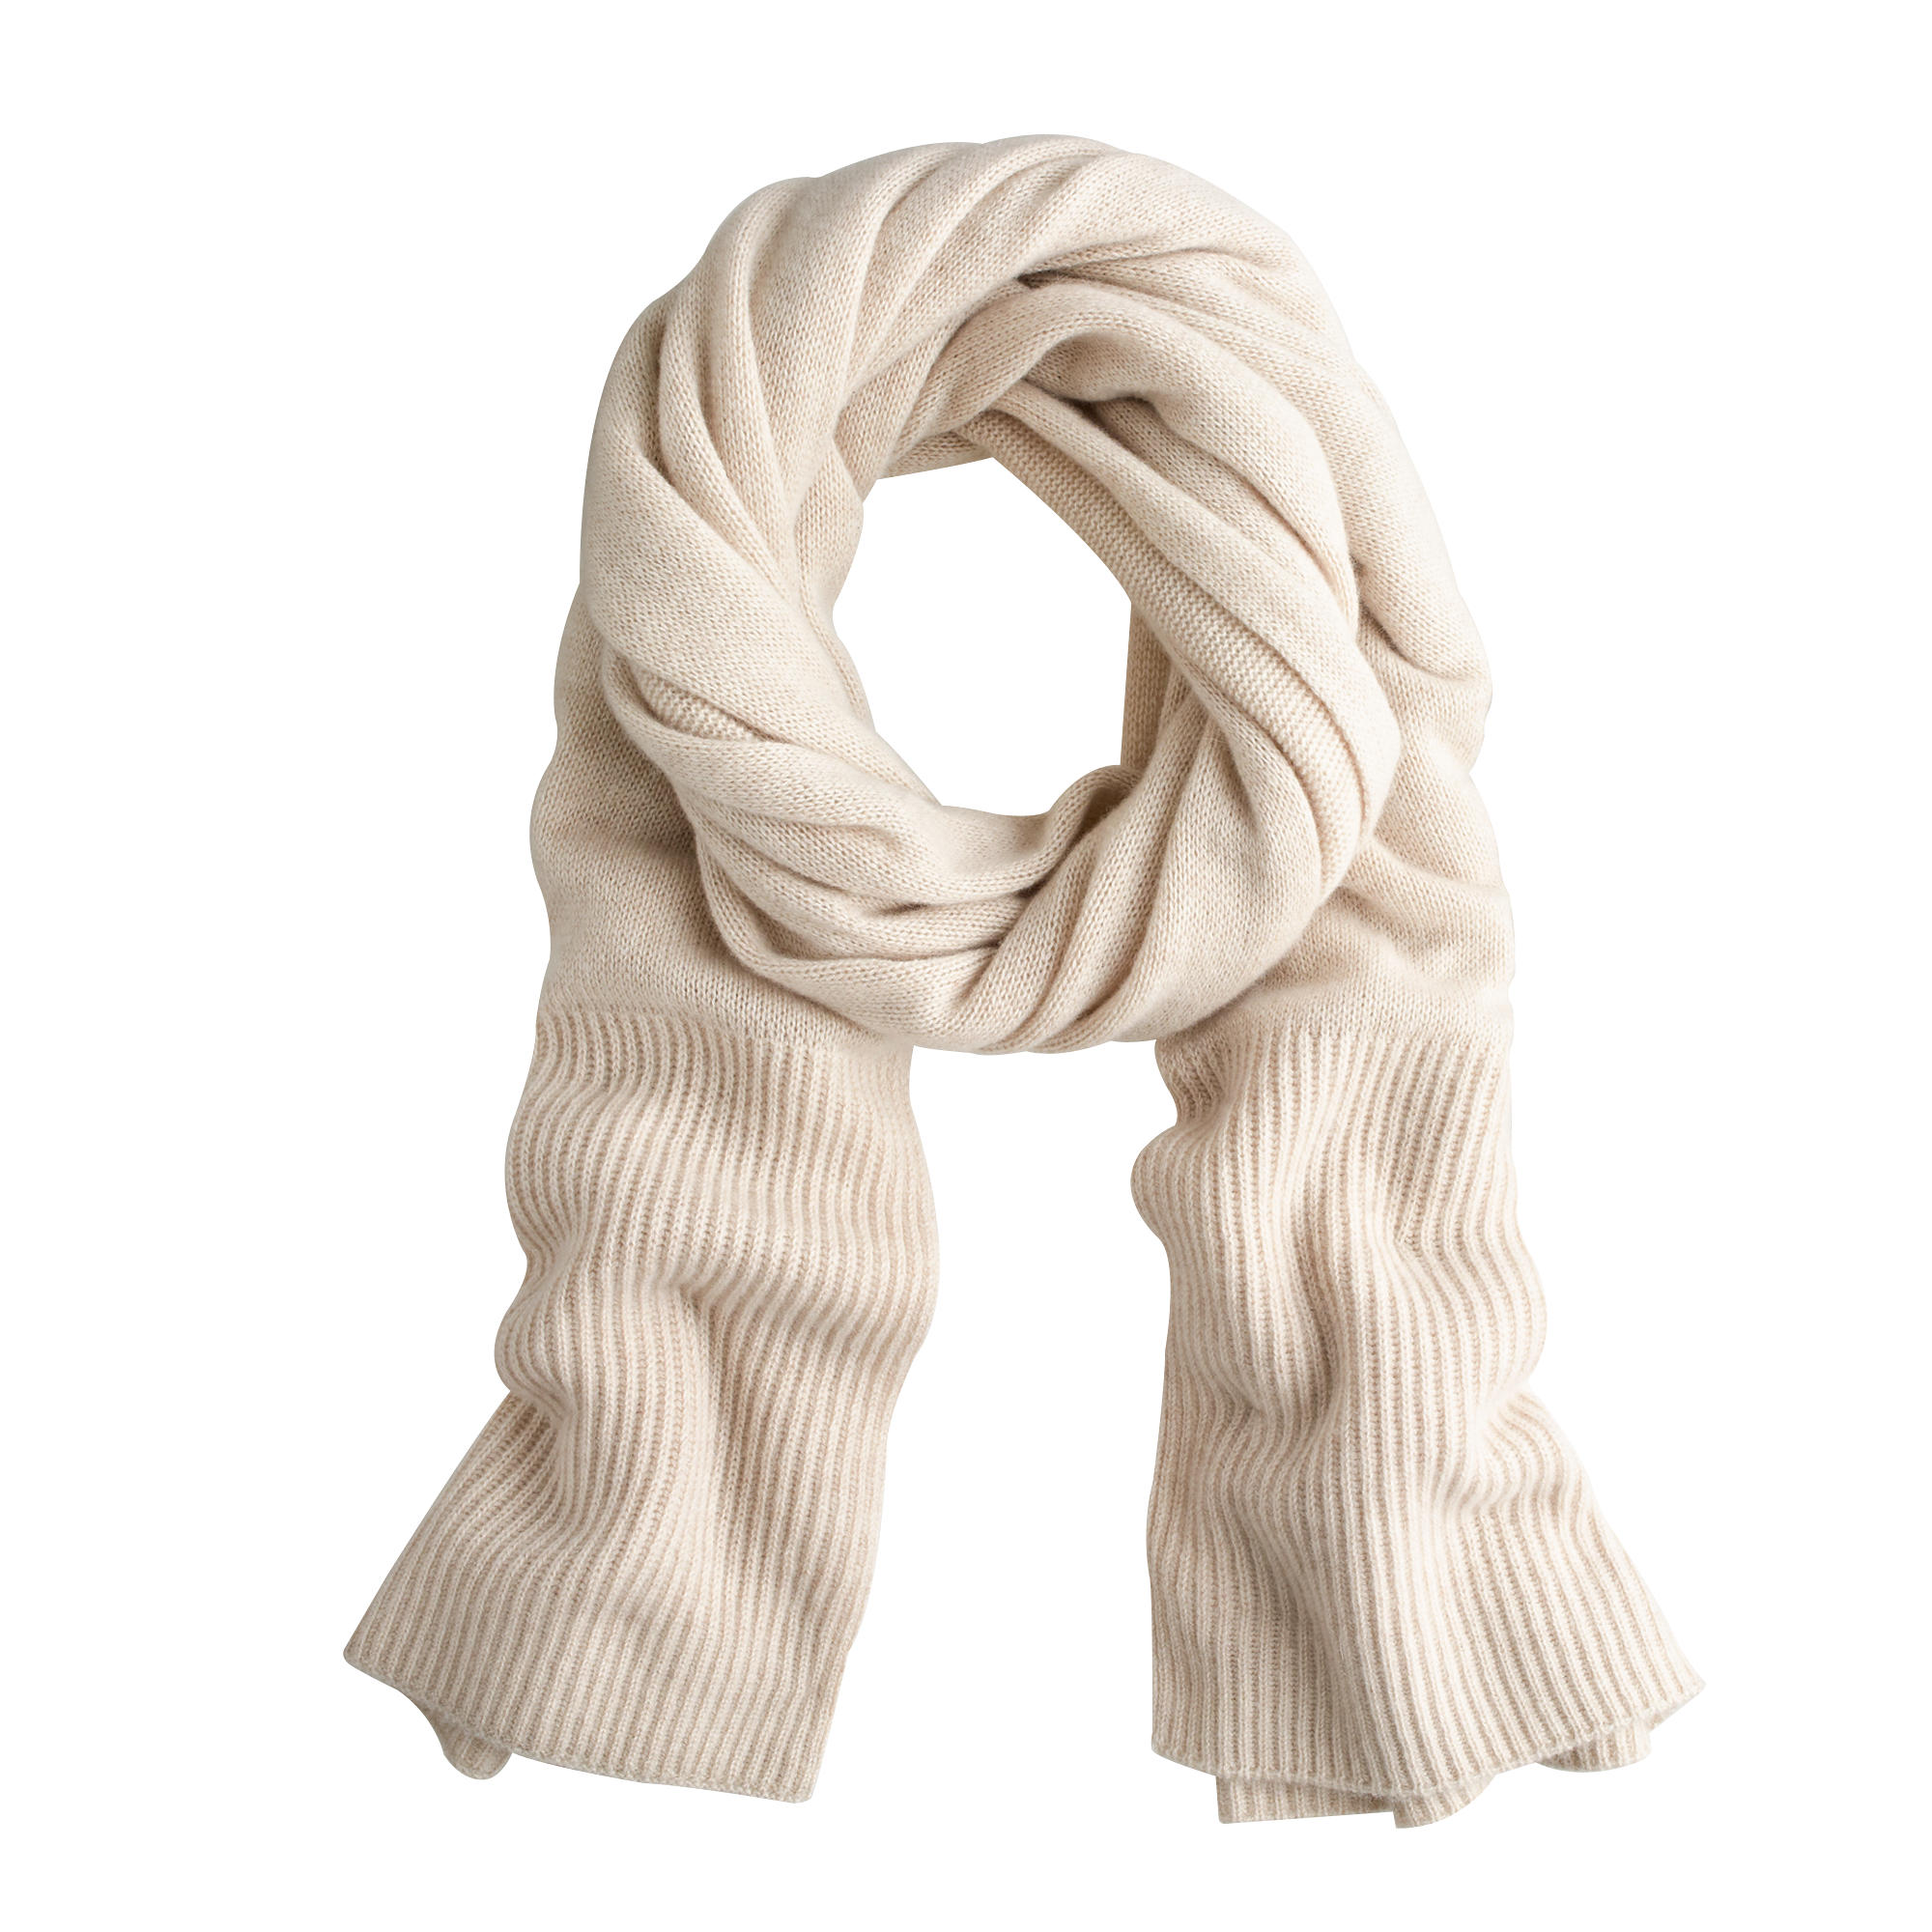 6 of the best winter scarves photo